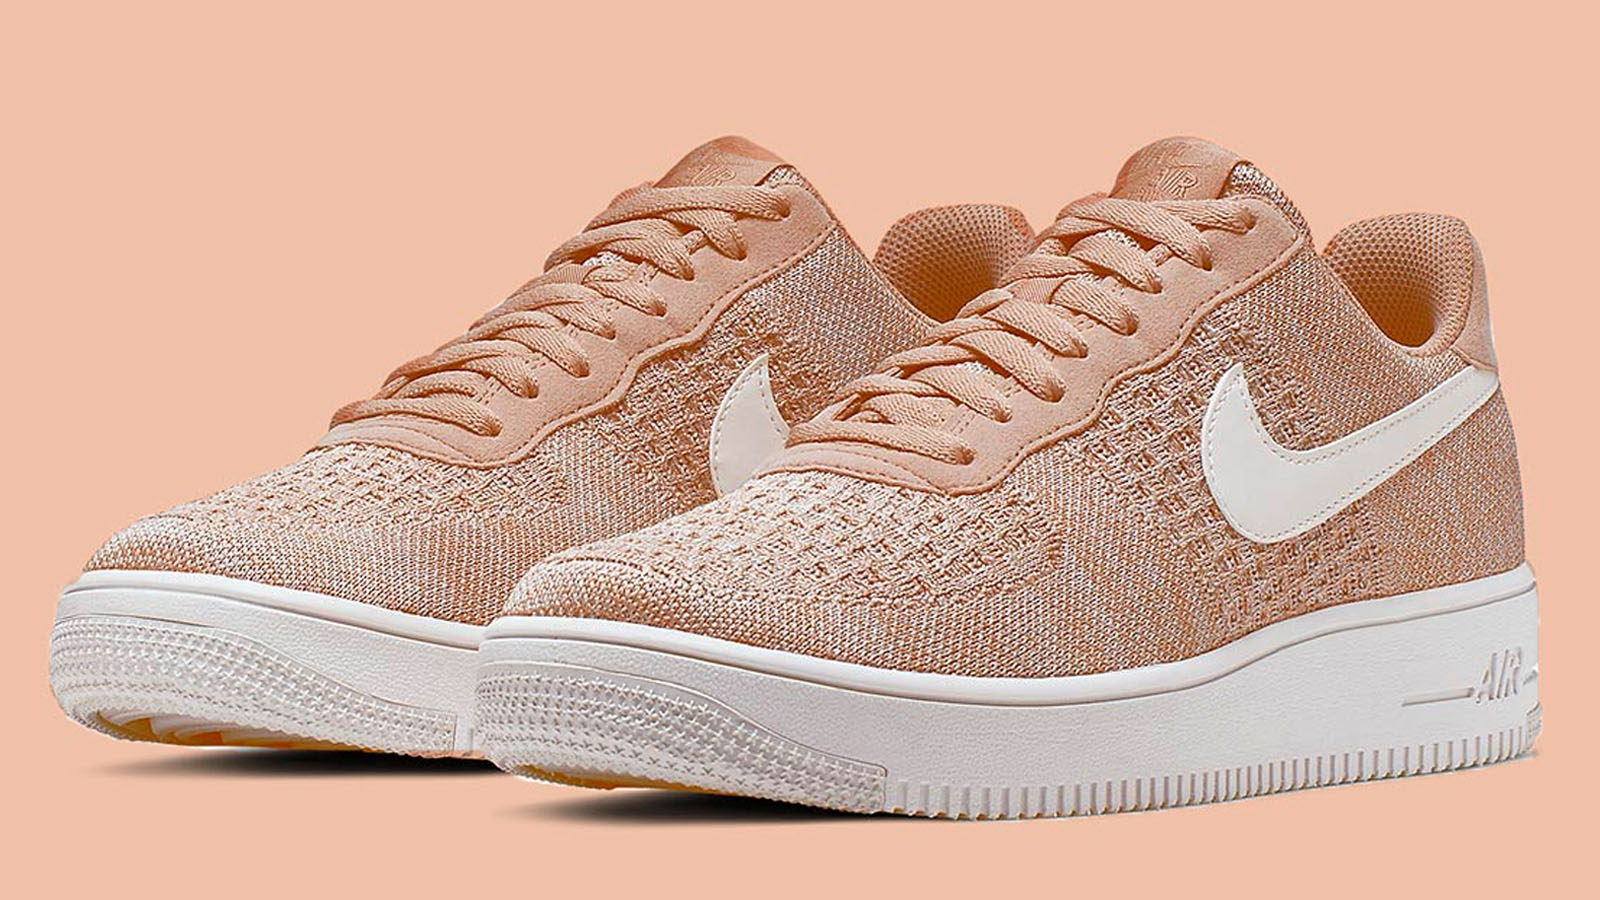 The Nike Air Force 1 Flyknit 2.0 Should